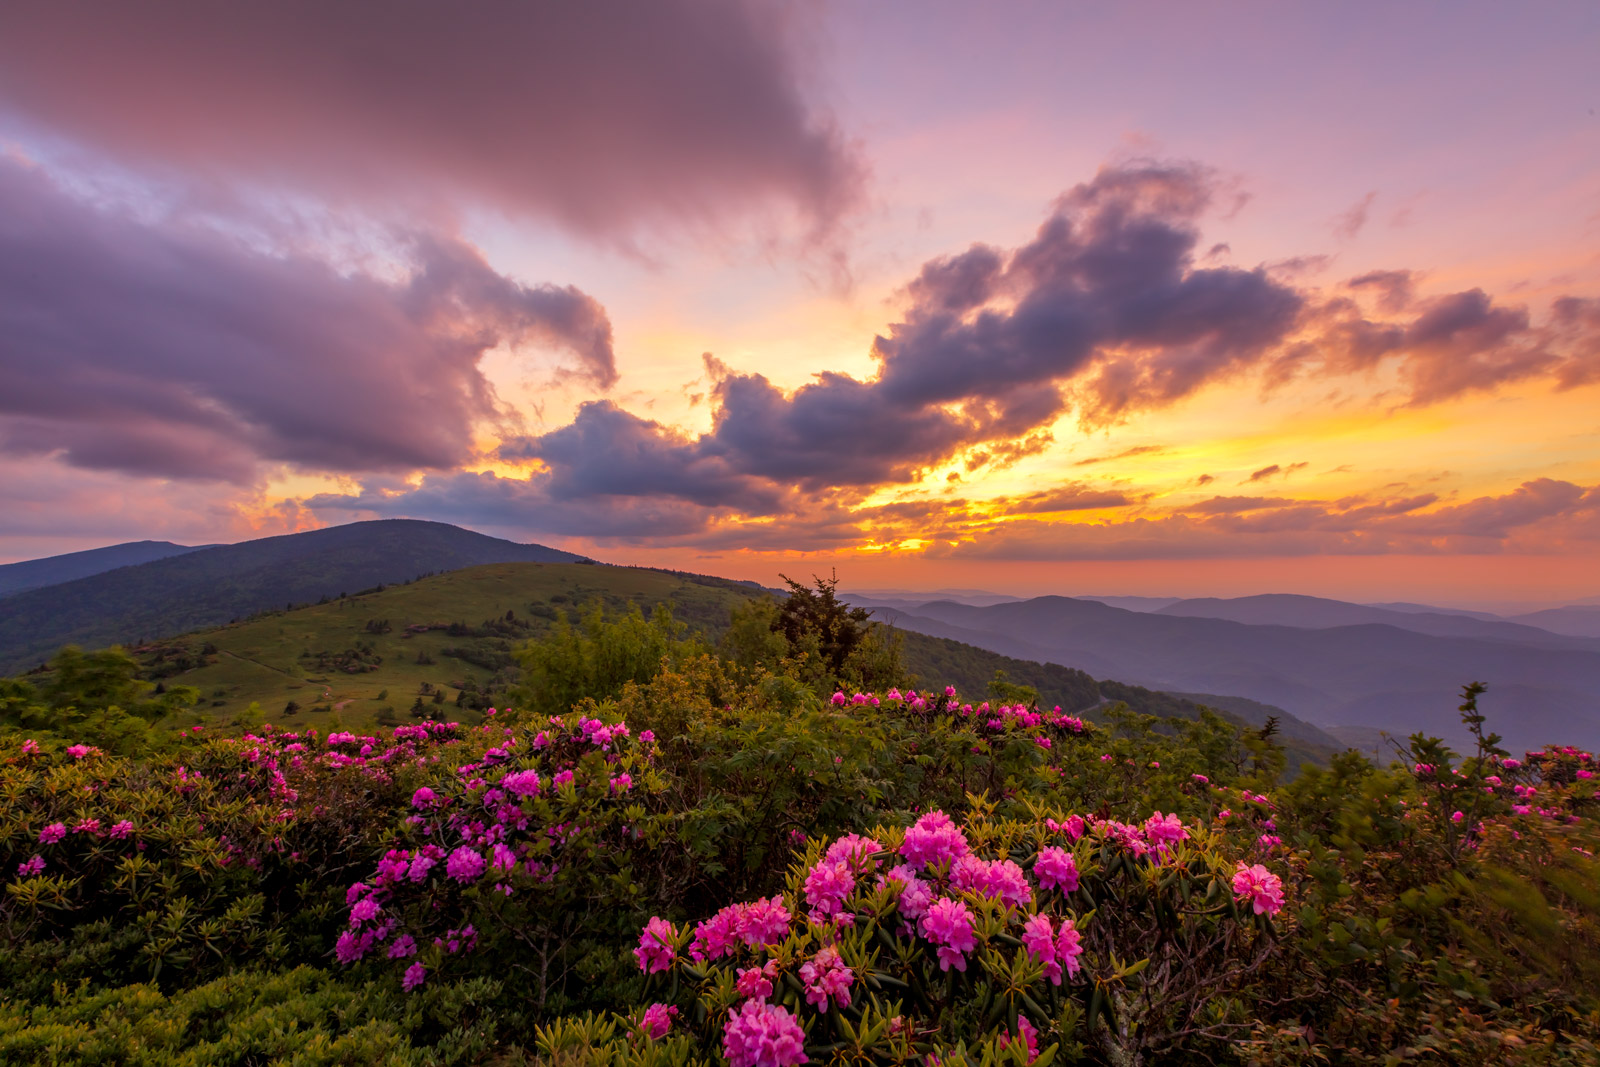 A Limited Edition, Fine Art photograph of Roan Mountain, Tennessee with an incredible sunset sky over the rhododendrons blooming...